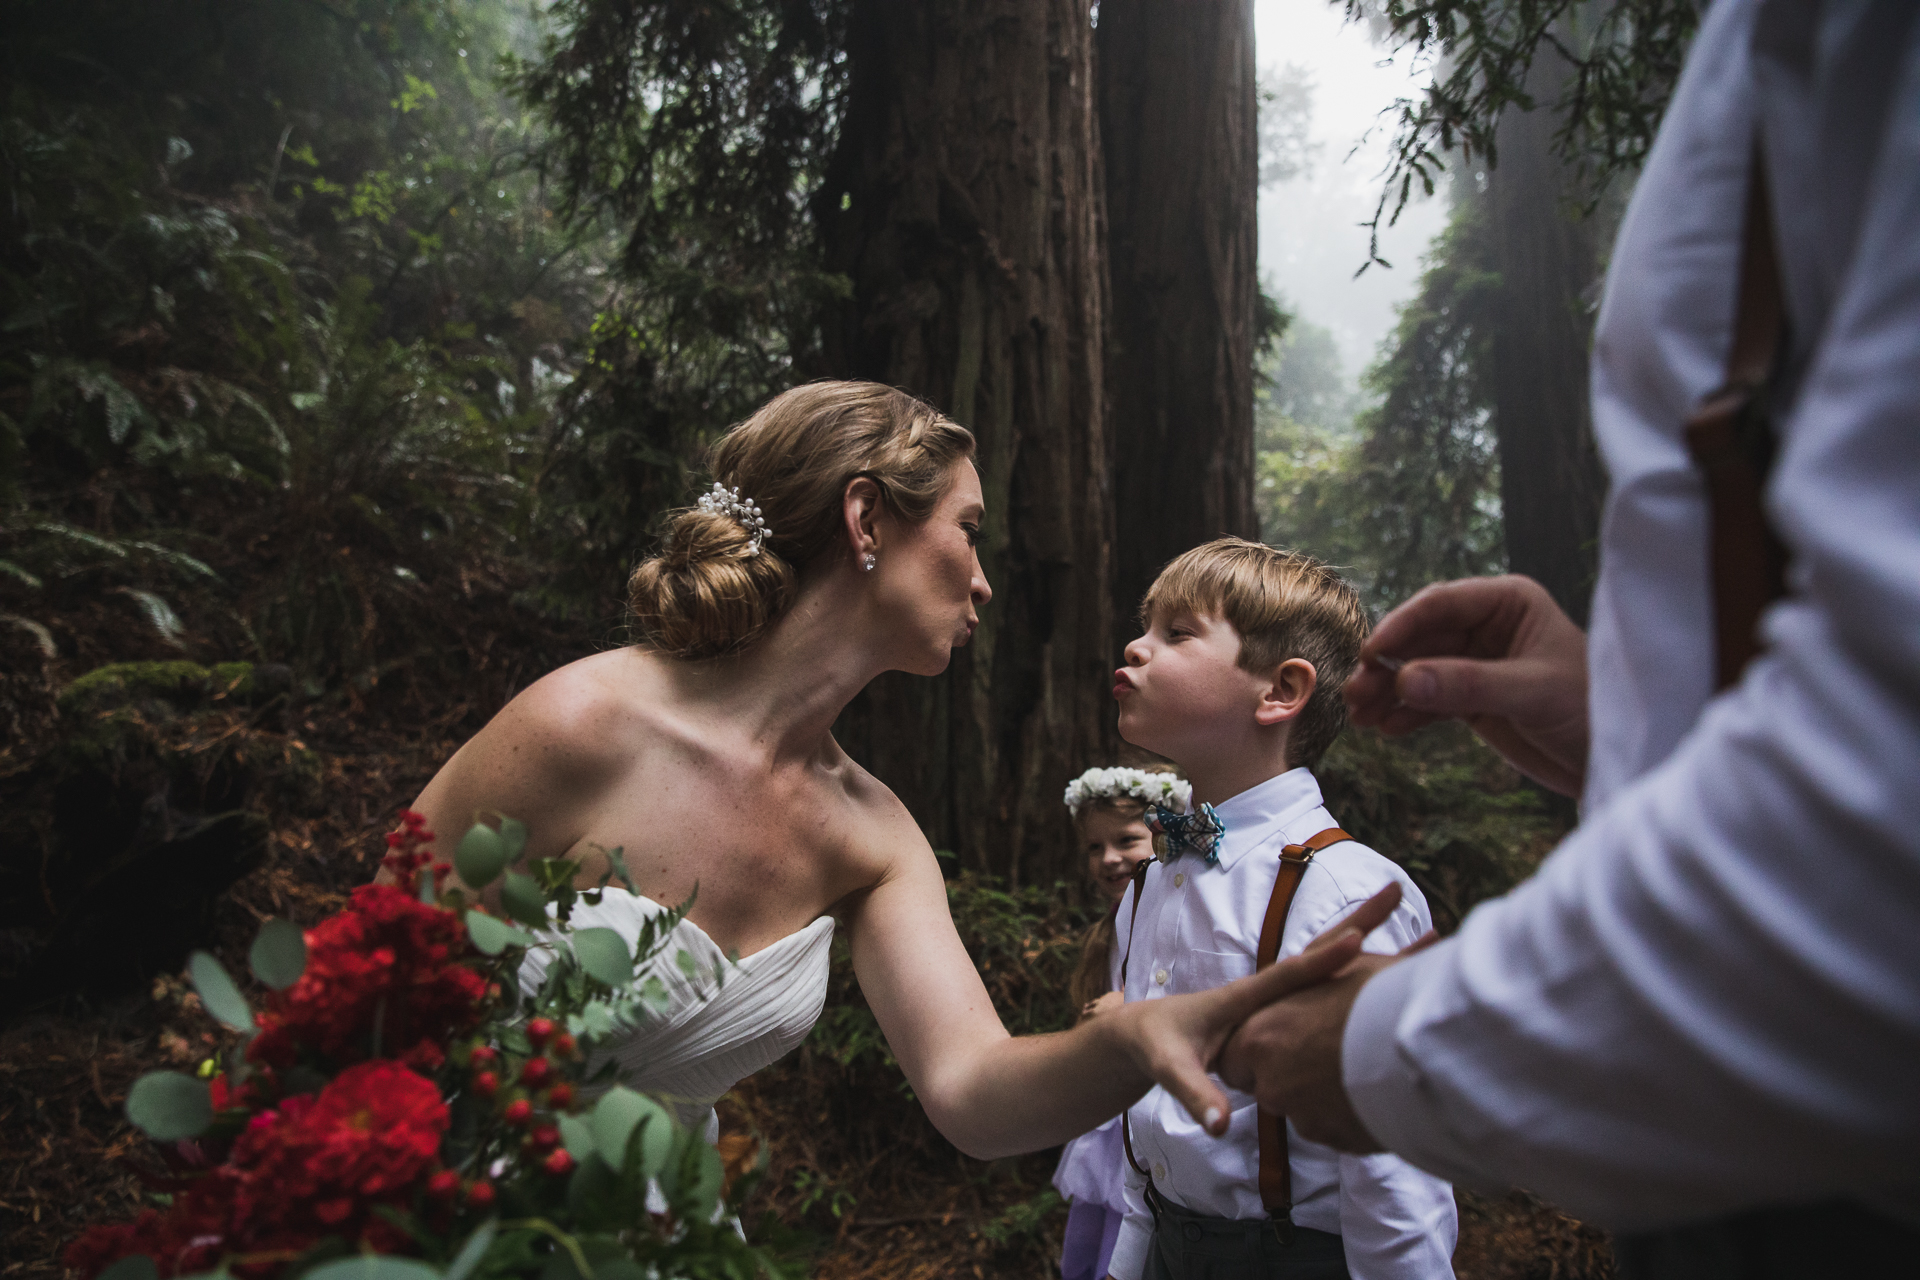 Mystical redwood forest wedding photos in CA | The groom was about to put the ring on the brides finger